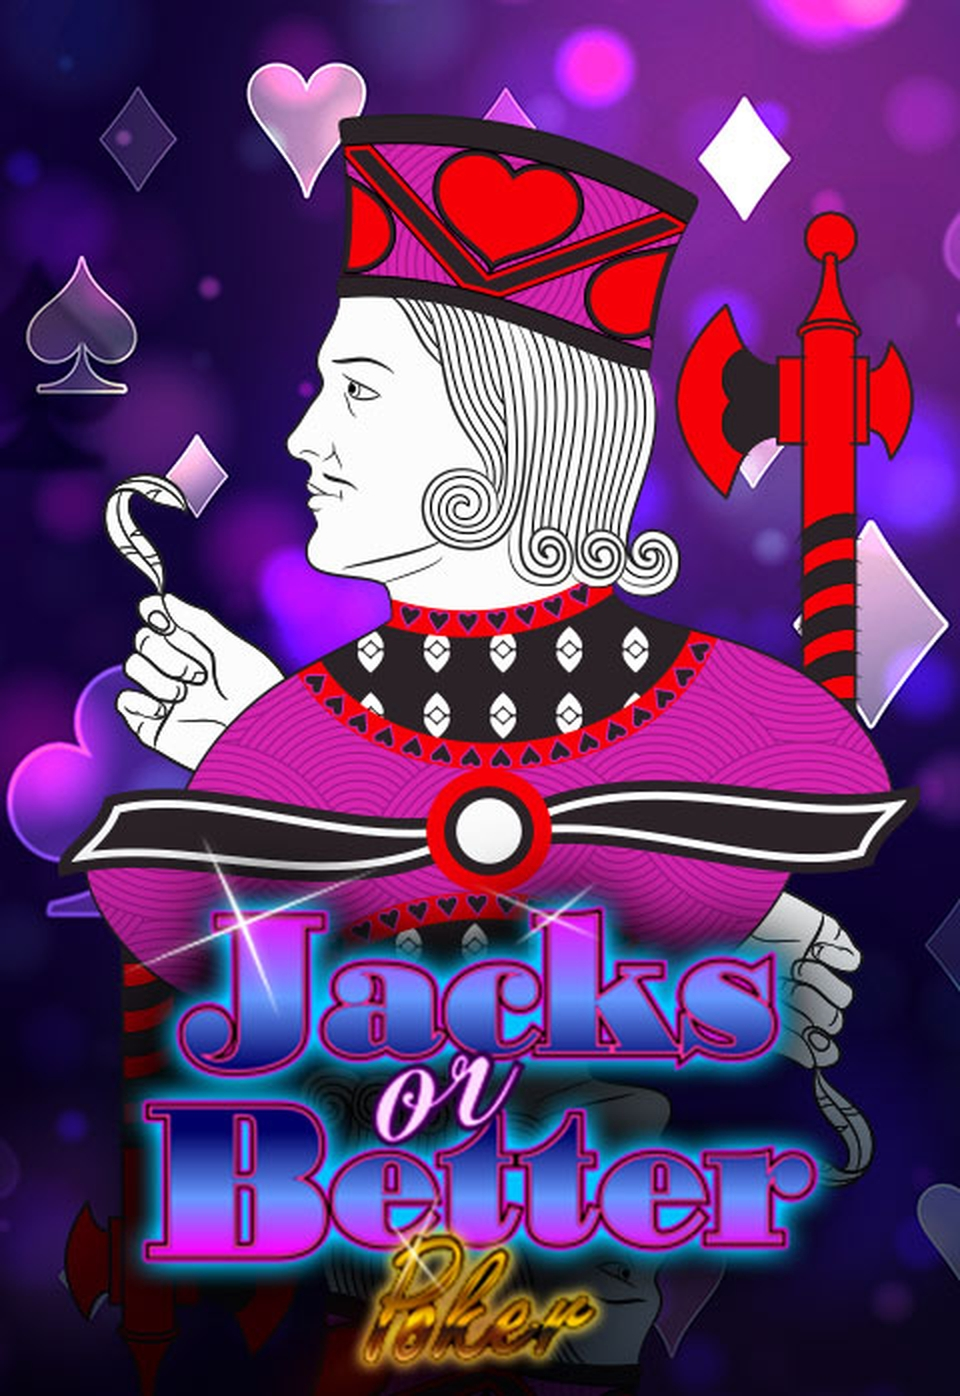 The Jacks or Better (Genii) Online Slot Demo Game by Genii